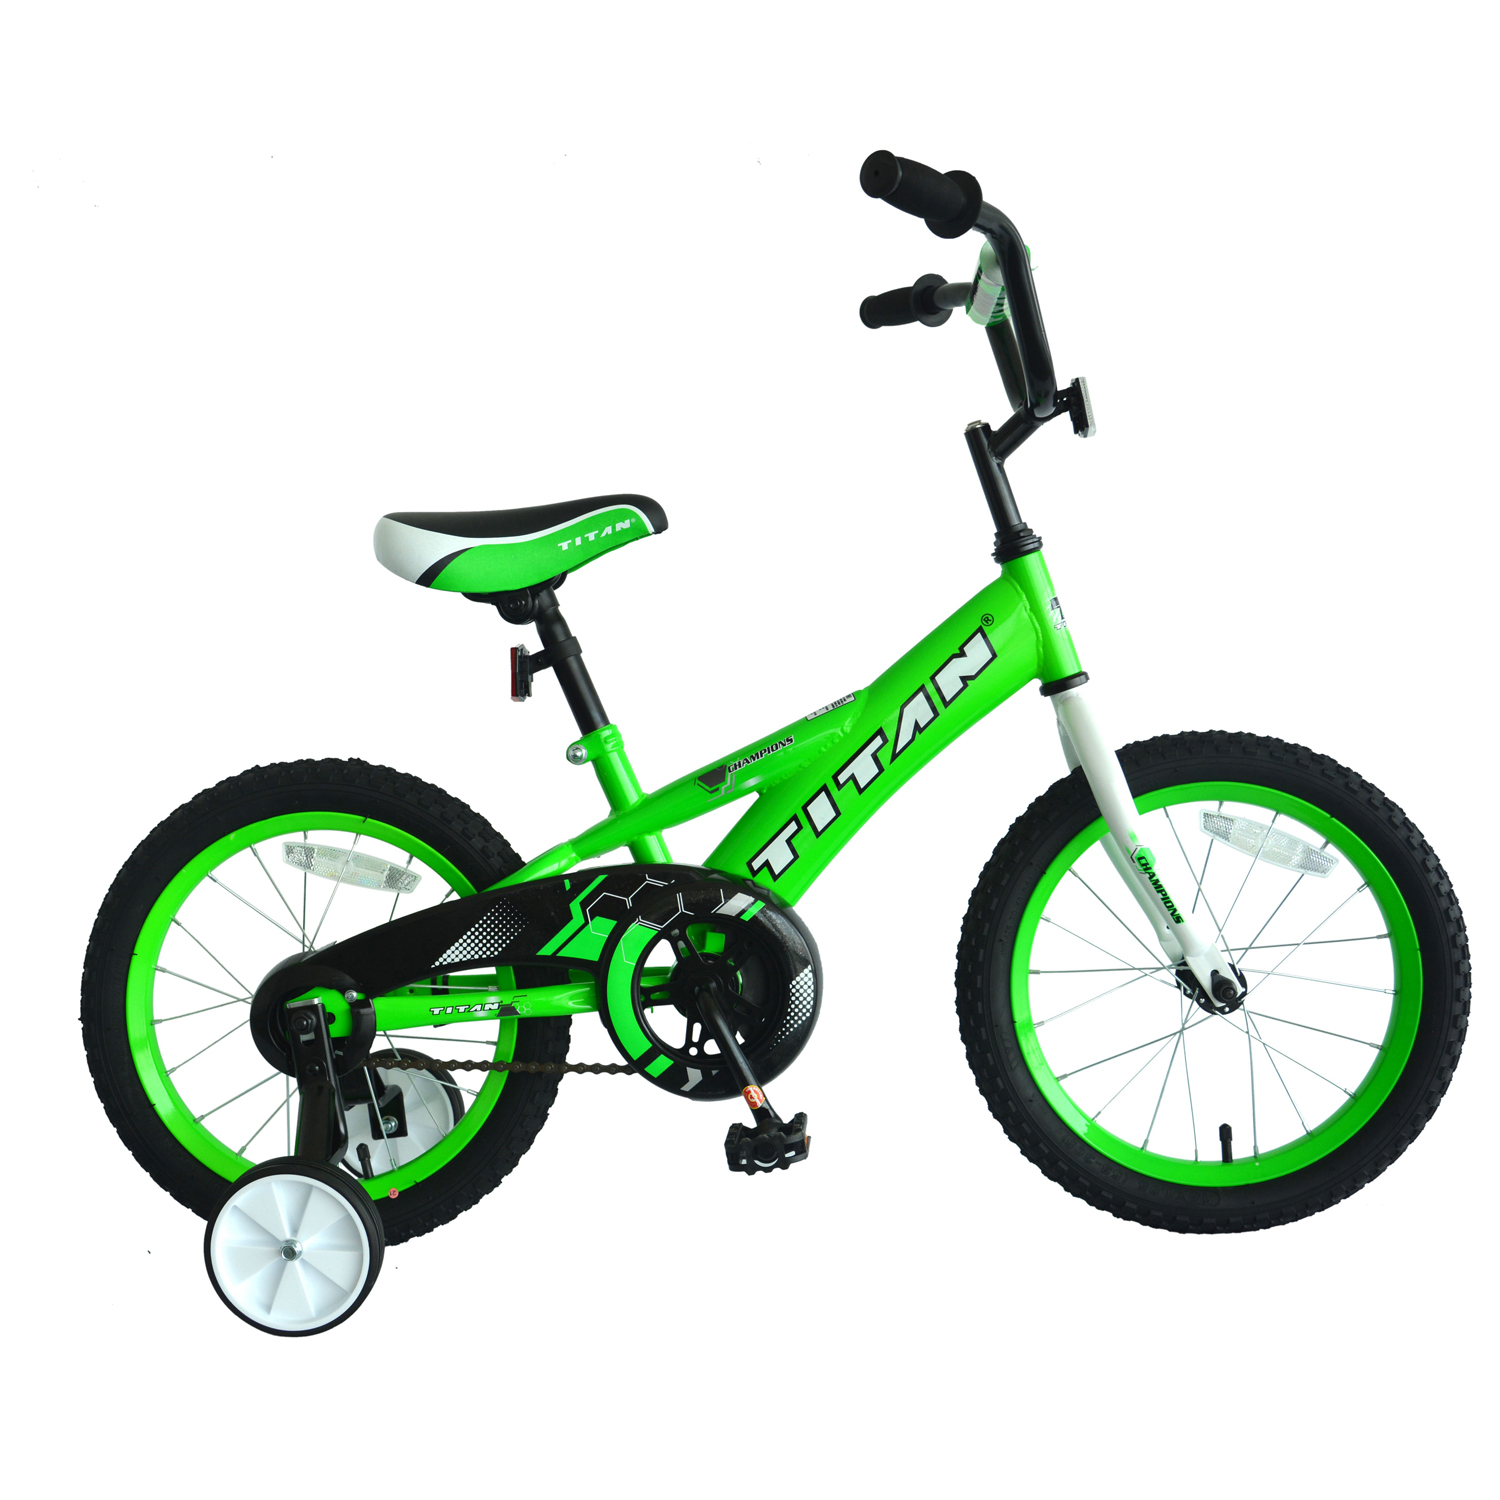 TITAN Champion Boys BMX Bike with Training Wheels, 16-Inch, Green by Titan